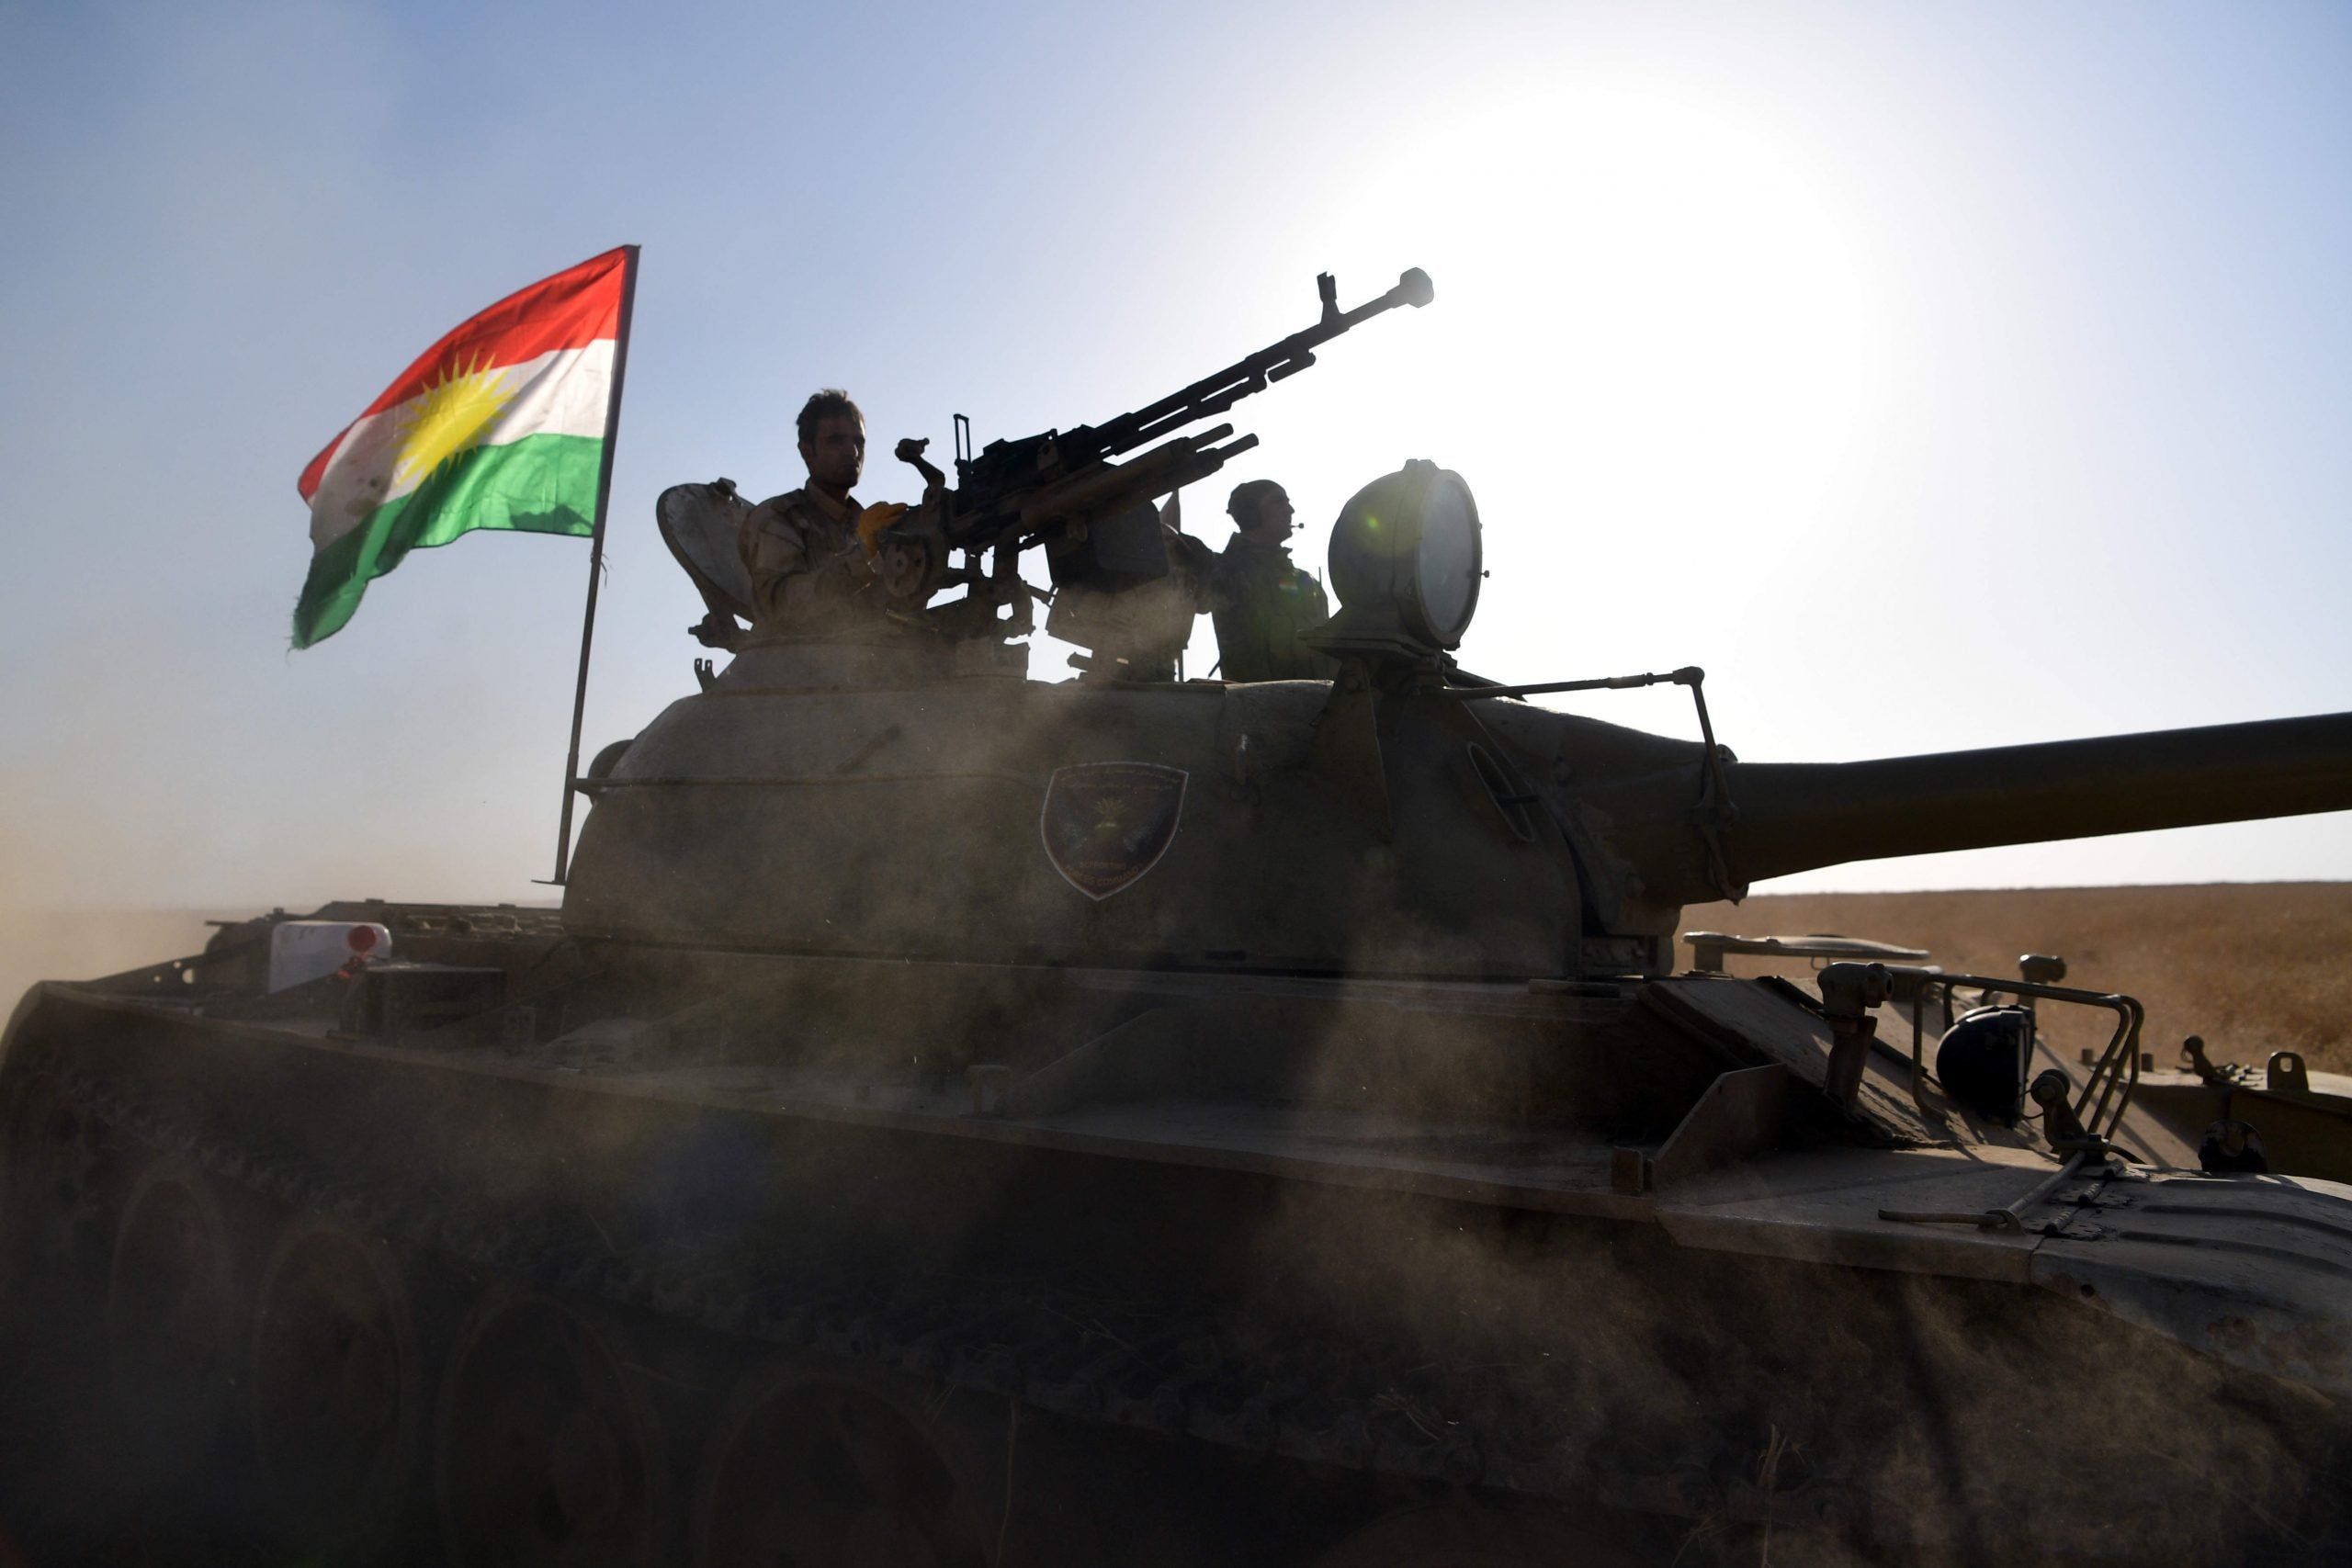 Dispatches from the frontline: Bernard-Henri Lévy on the road to Mosul